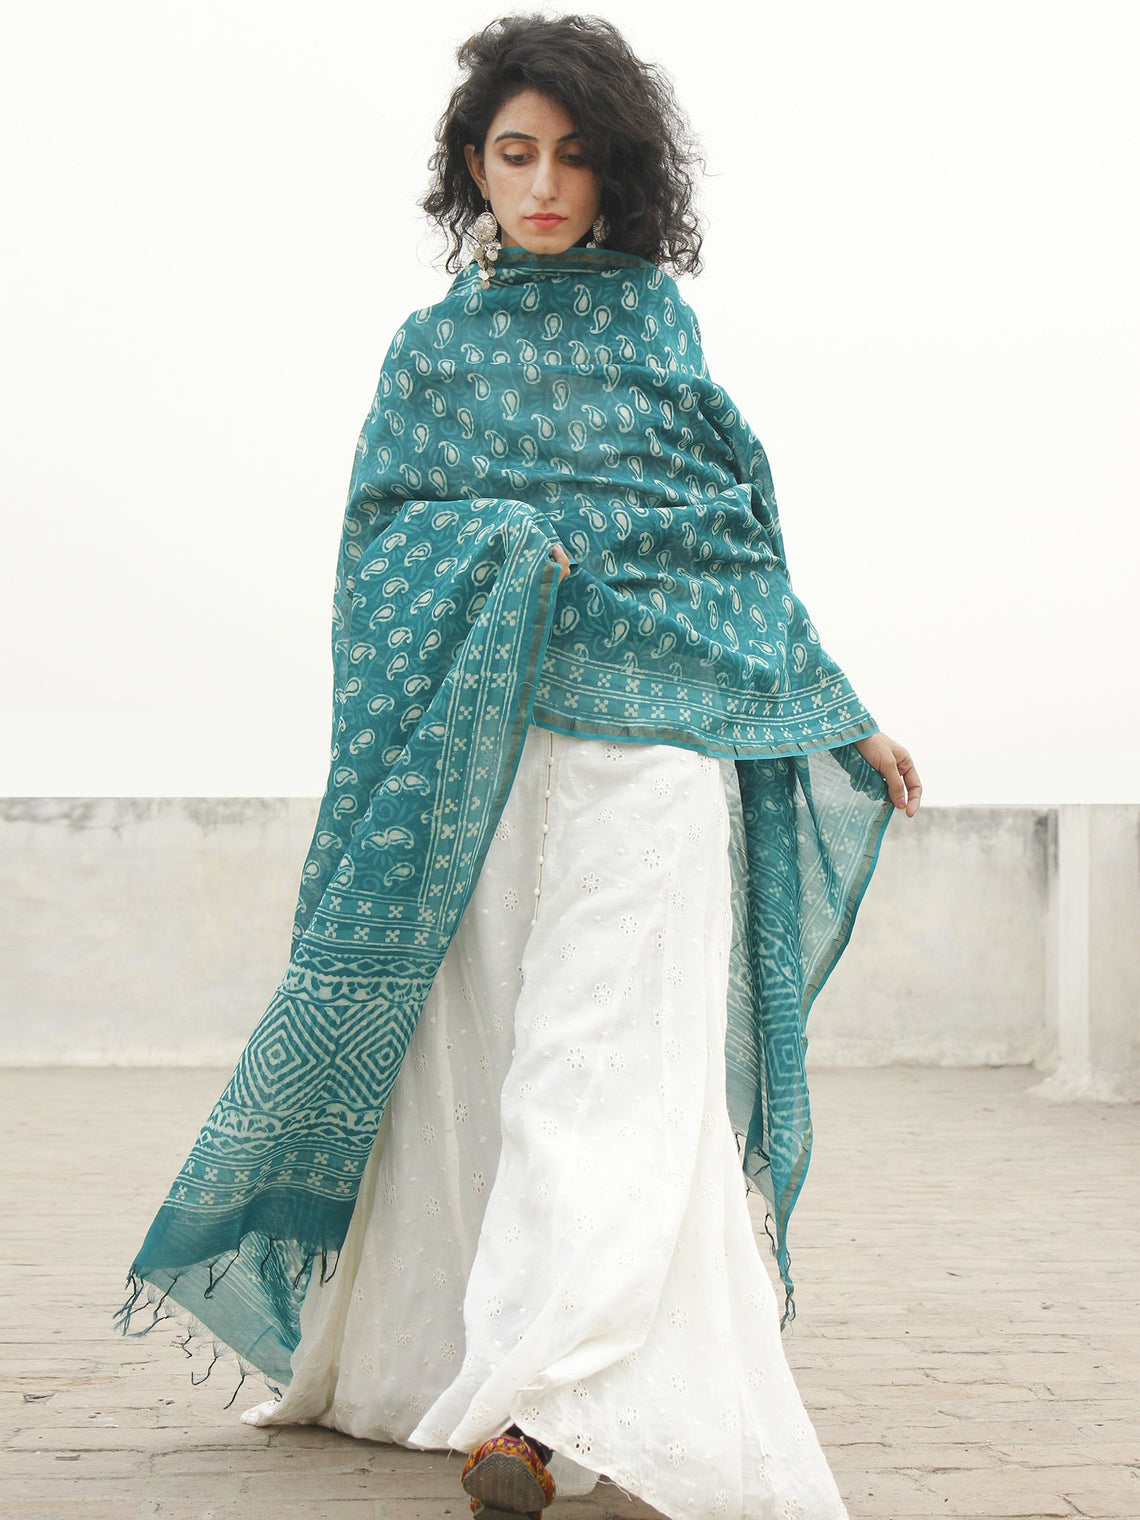 Teal Green Ivory Chanderi Hand Black Printed & Hand Painted Dupatta - D04170215